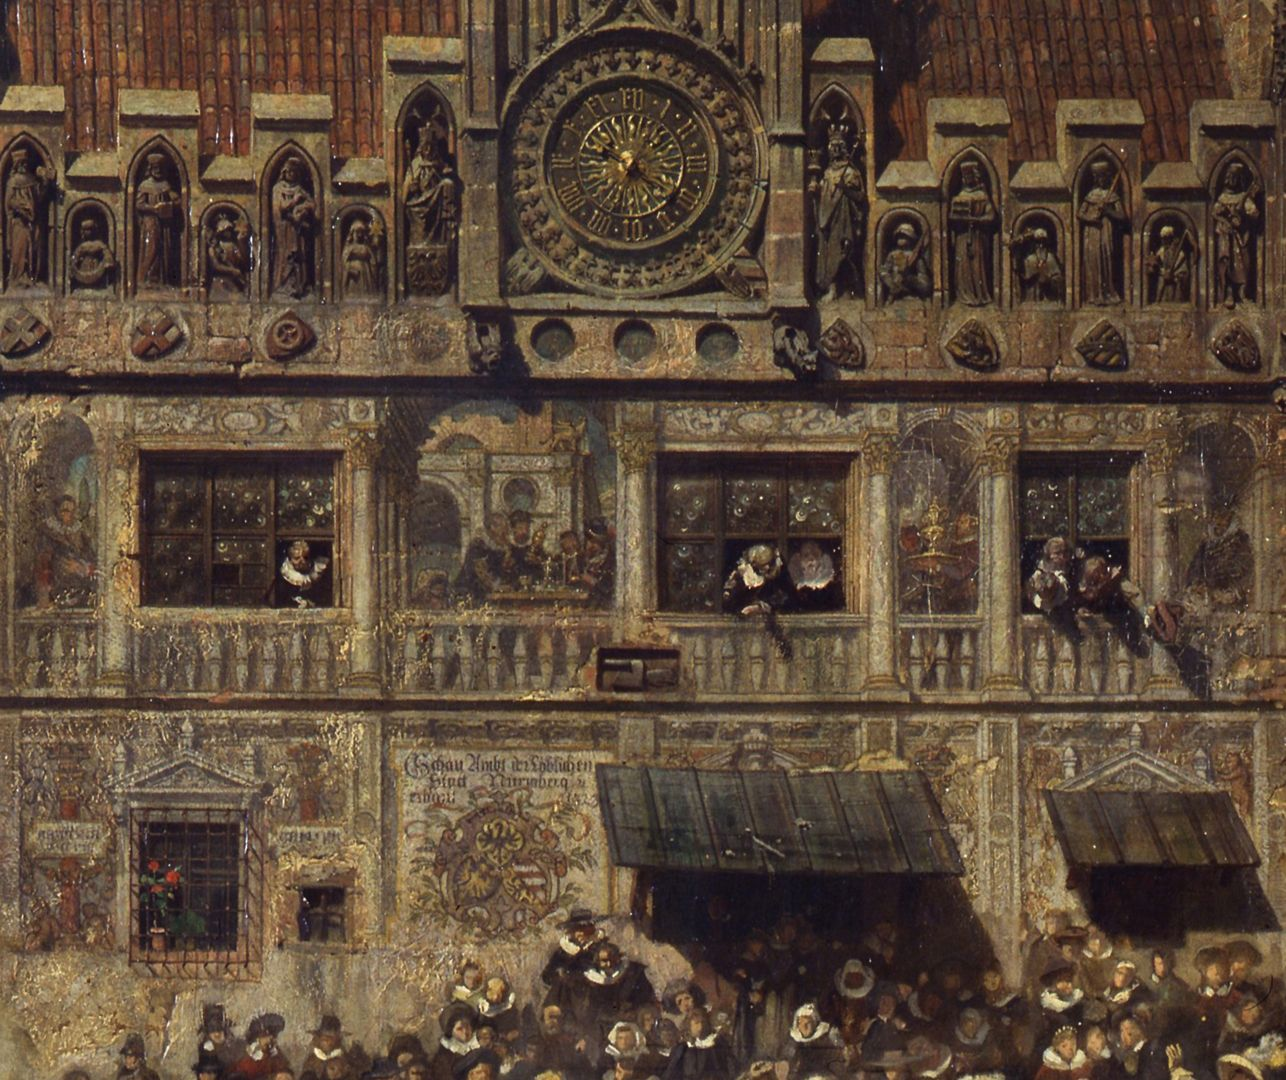 The old show at Nuremberg at the time of Gustav Adolf's entry on 21 March 1632. The old show, an official institution for the testing of precious metals, detail